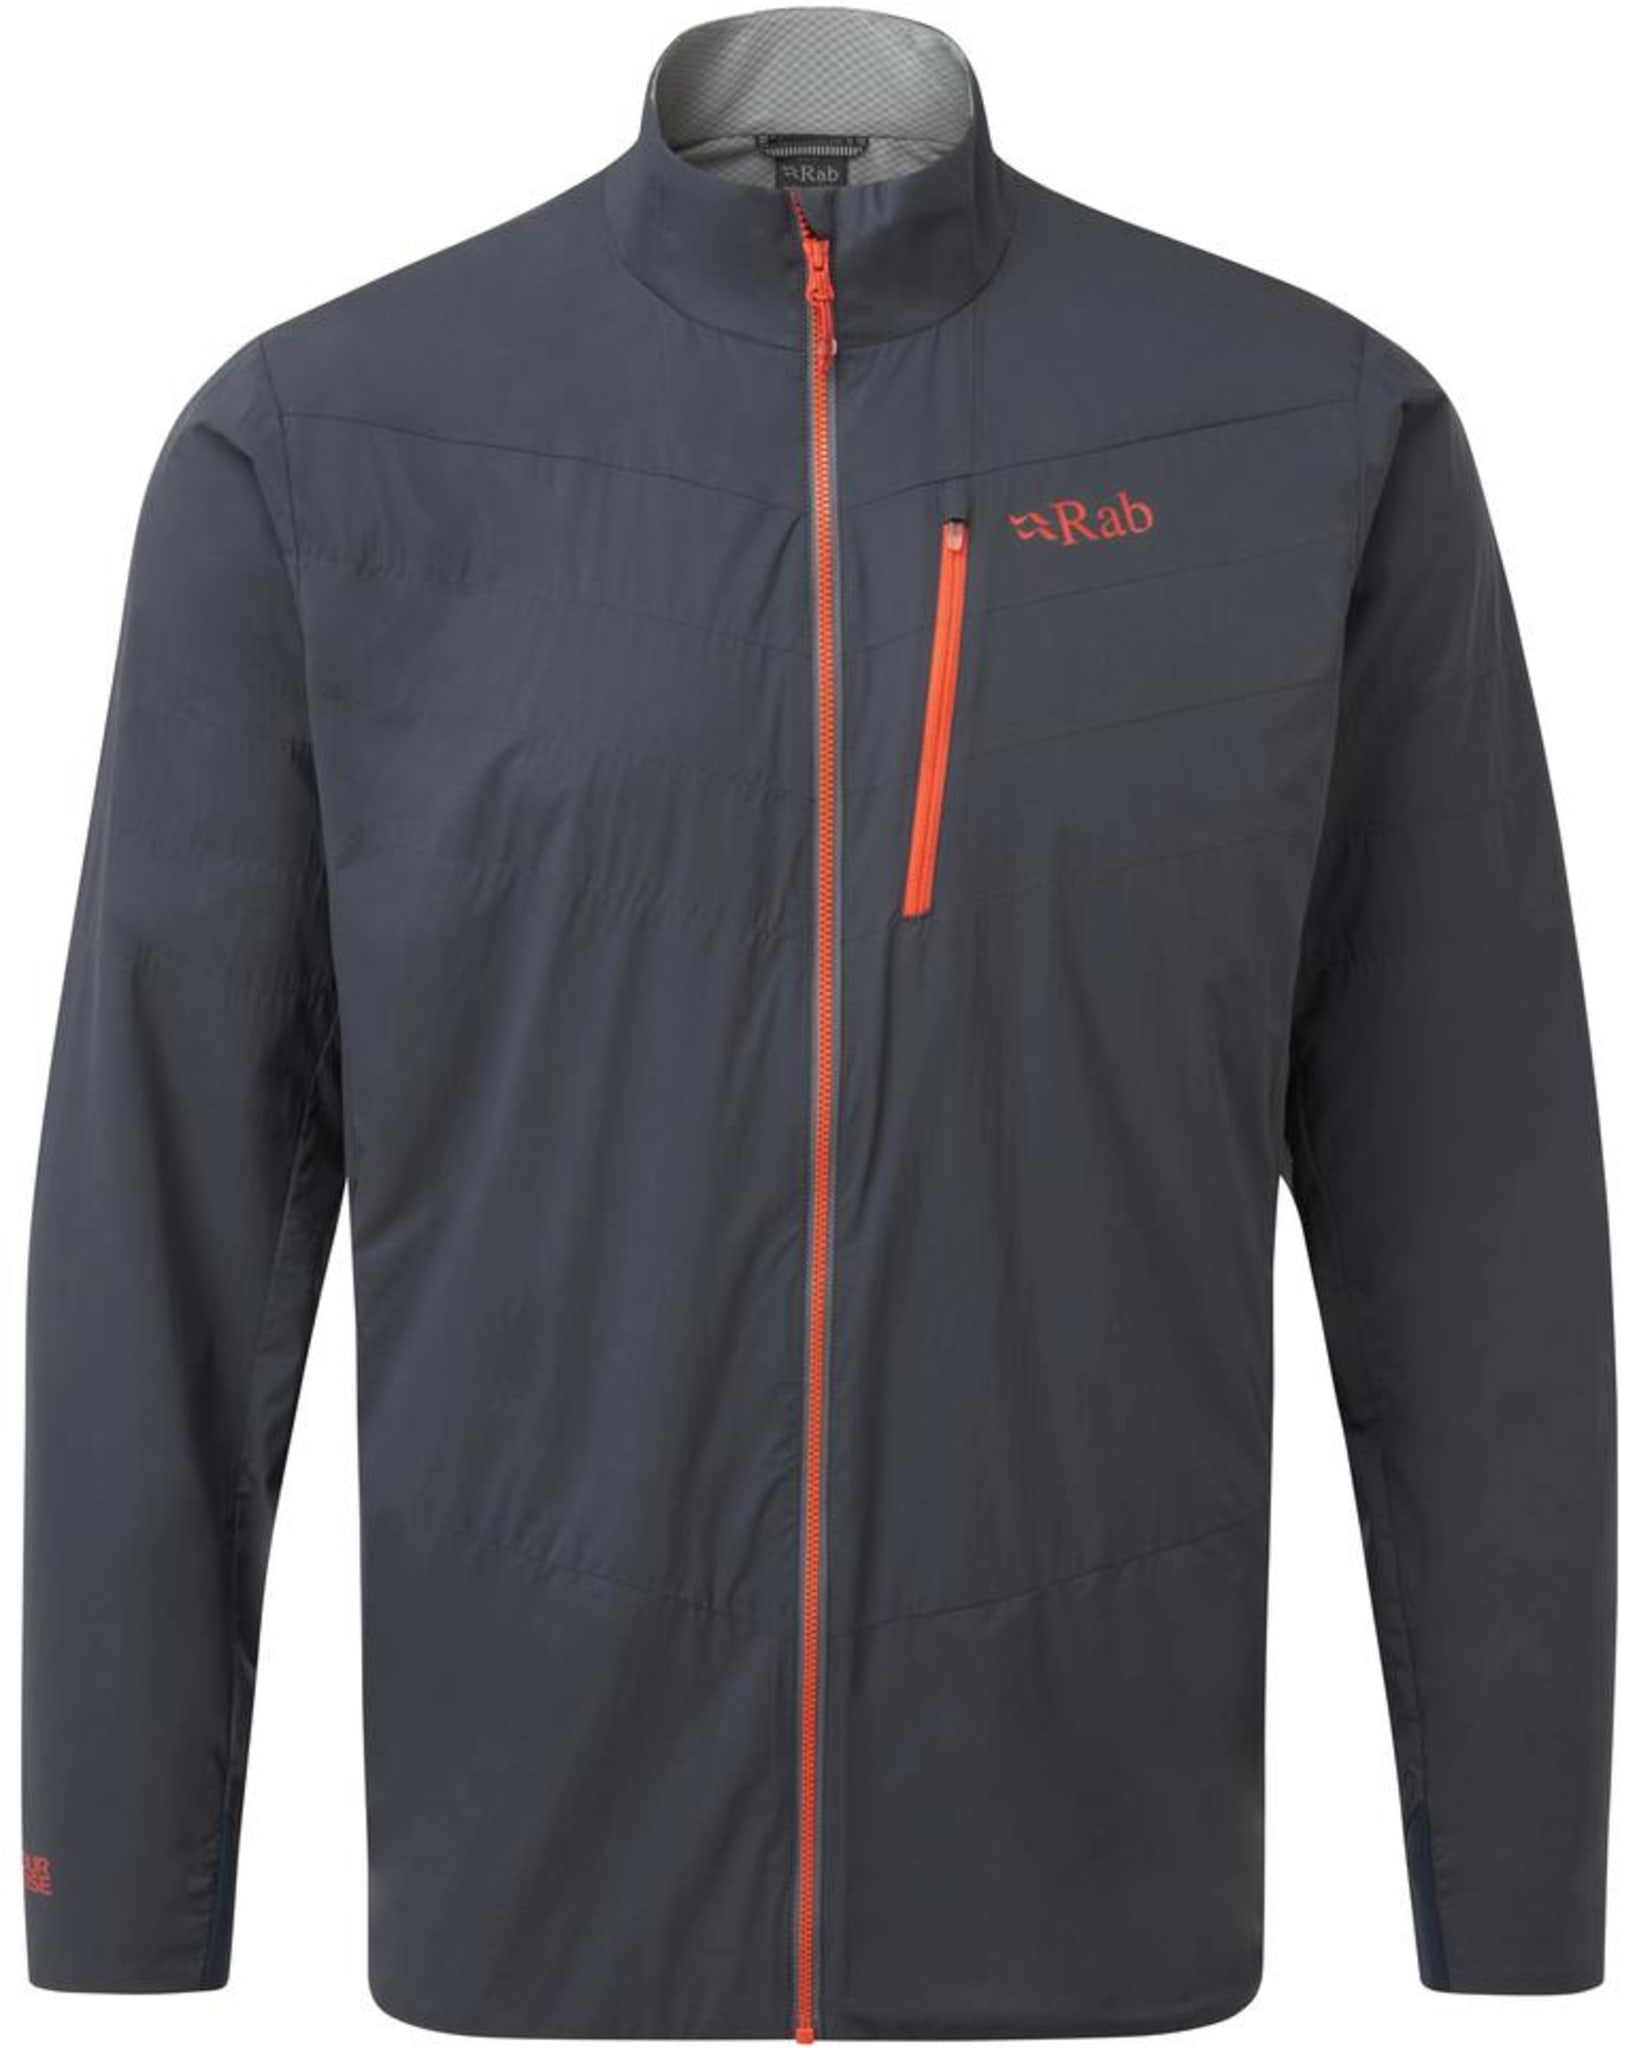 VR Ridgeline Jacket Ms